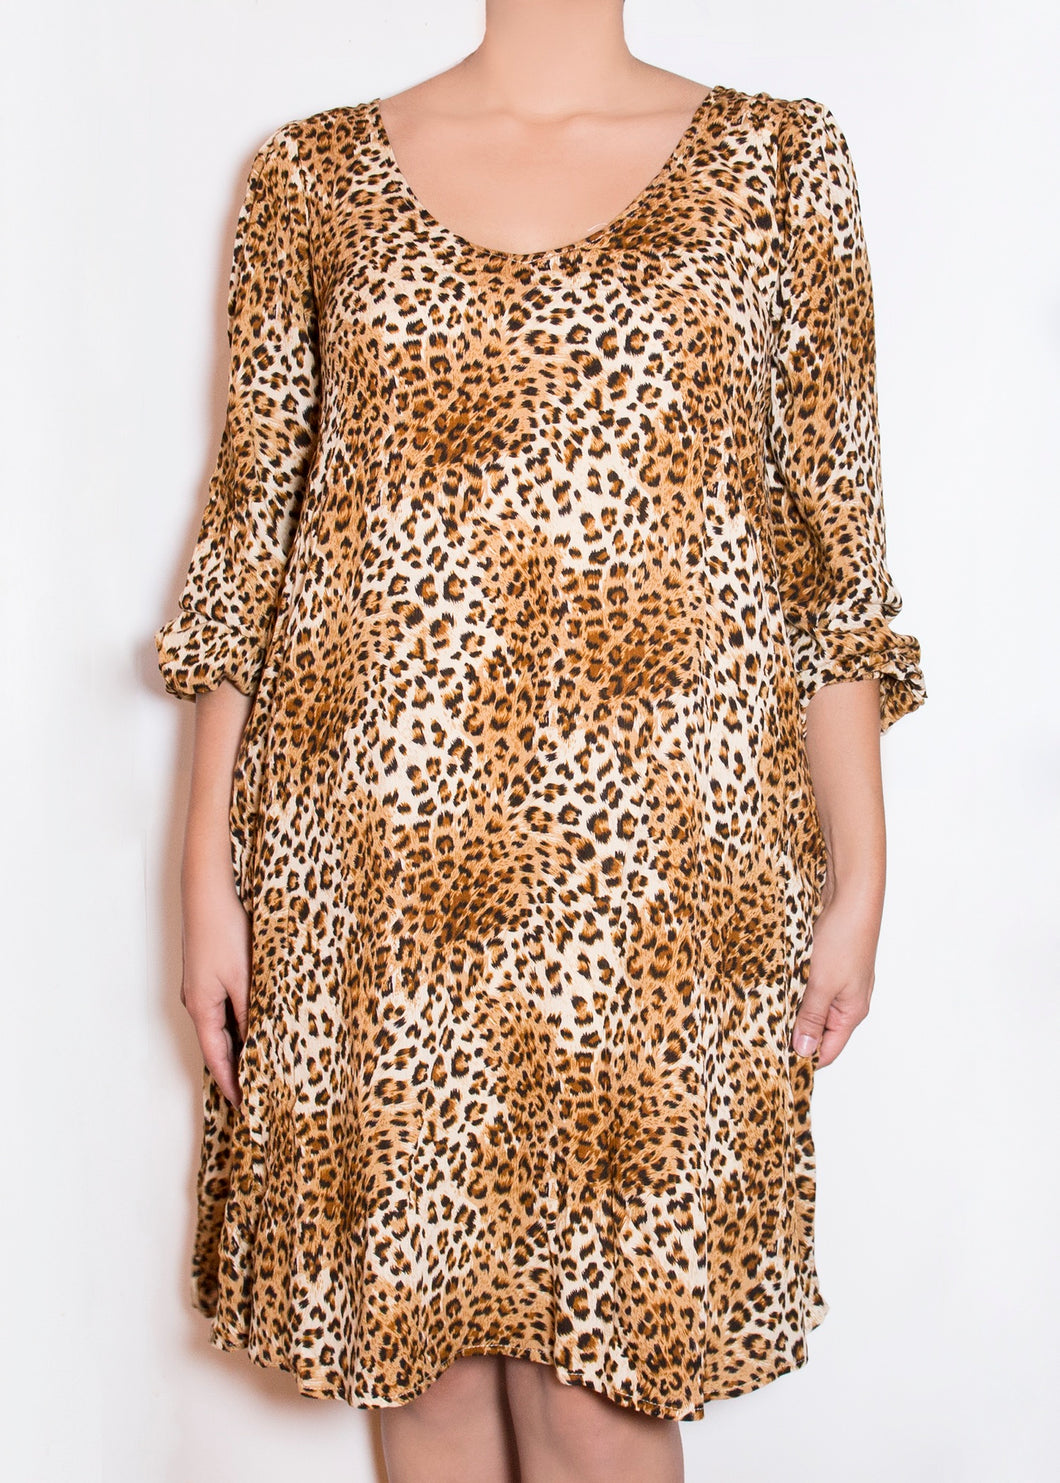 Aster Dress - Cheetah Print - (S)